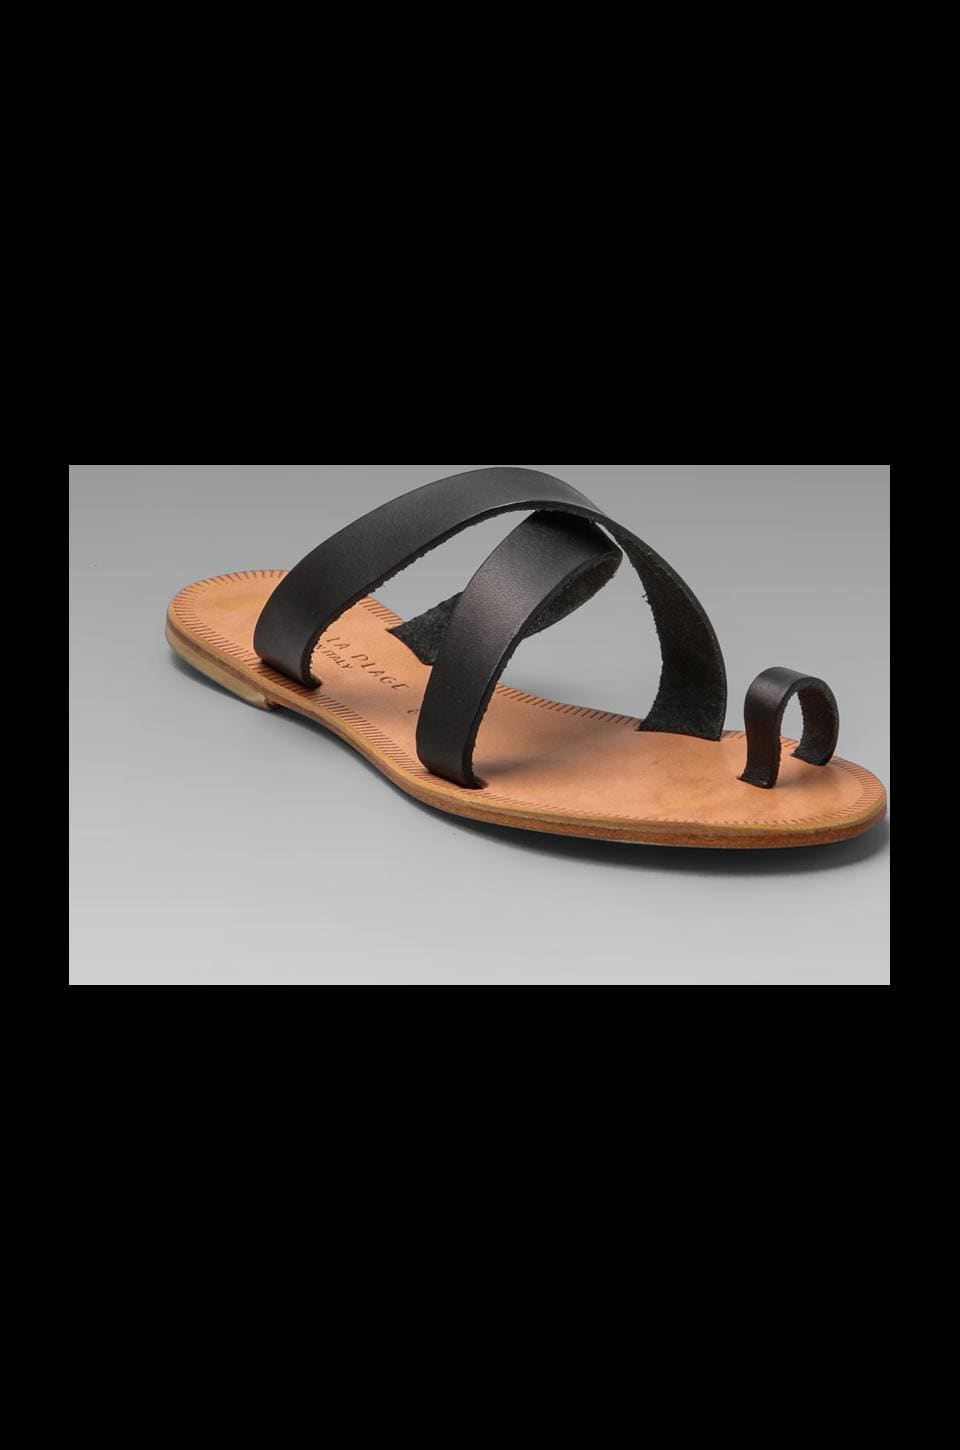 Joie a La Plage Roque Sandal in Black